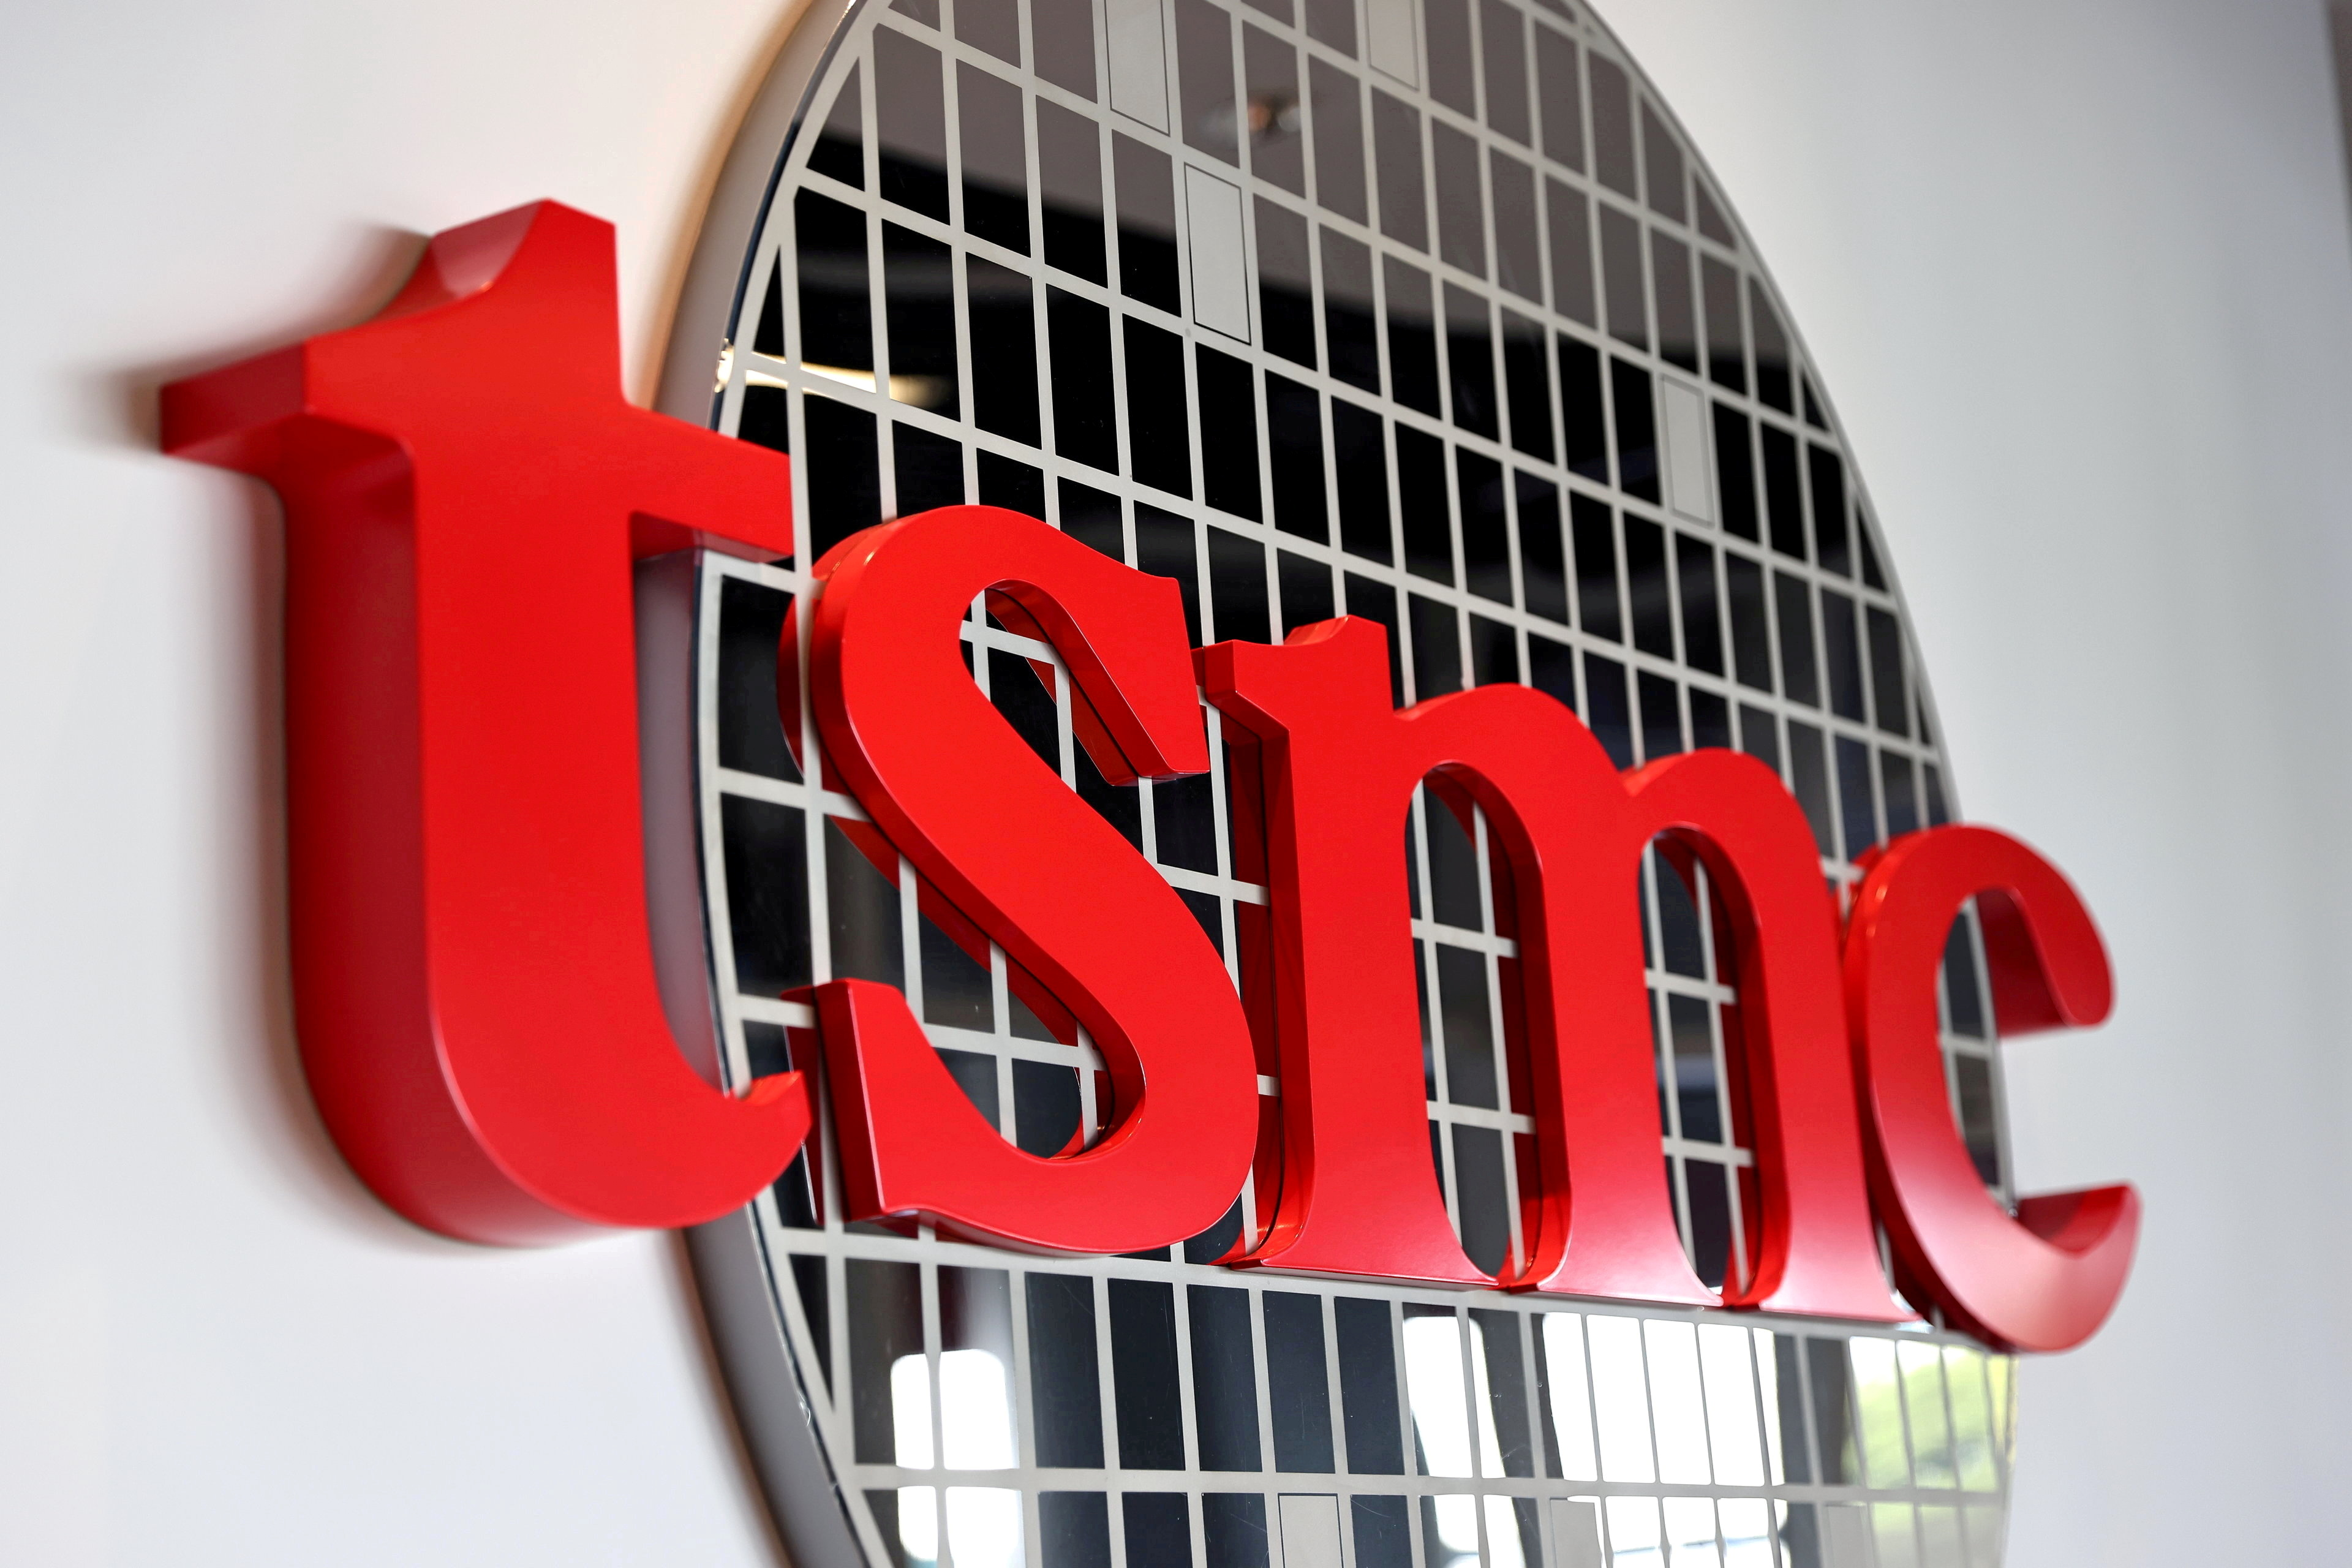 The logo of Taiwan Semiconductor Manufacturing Co (TSMC) is pictured at its headquarters, in Hsinchu, Taiwan, Jan. 19, 2021. REUTERS/Ann Wang